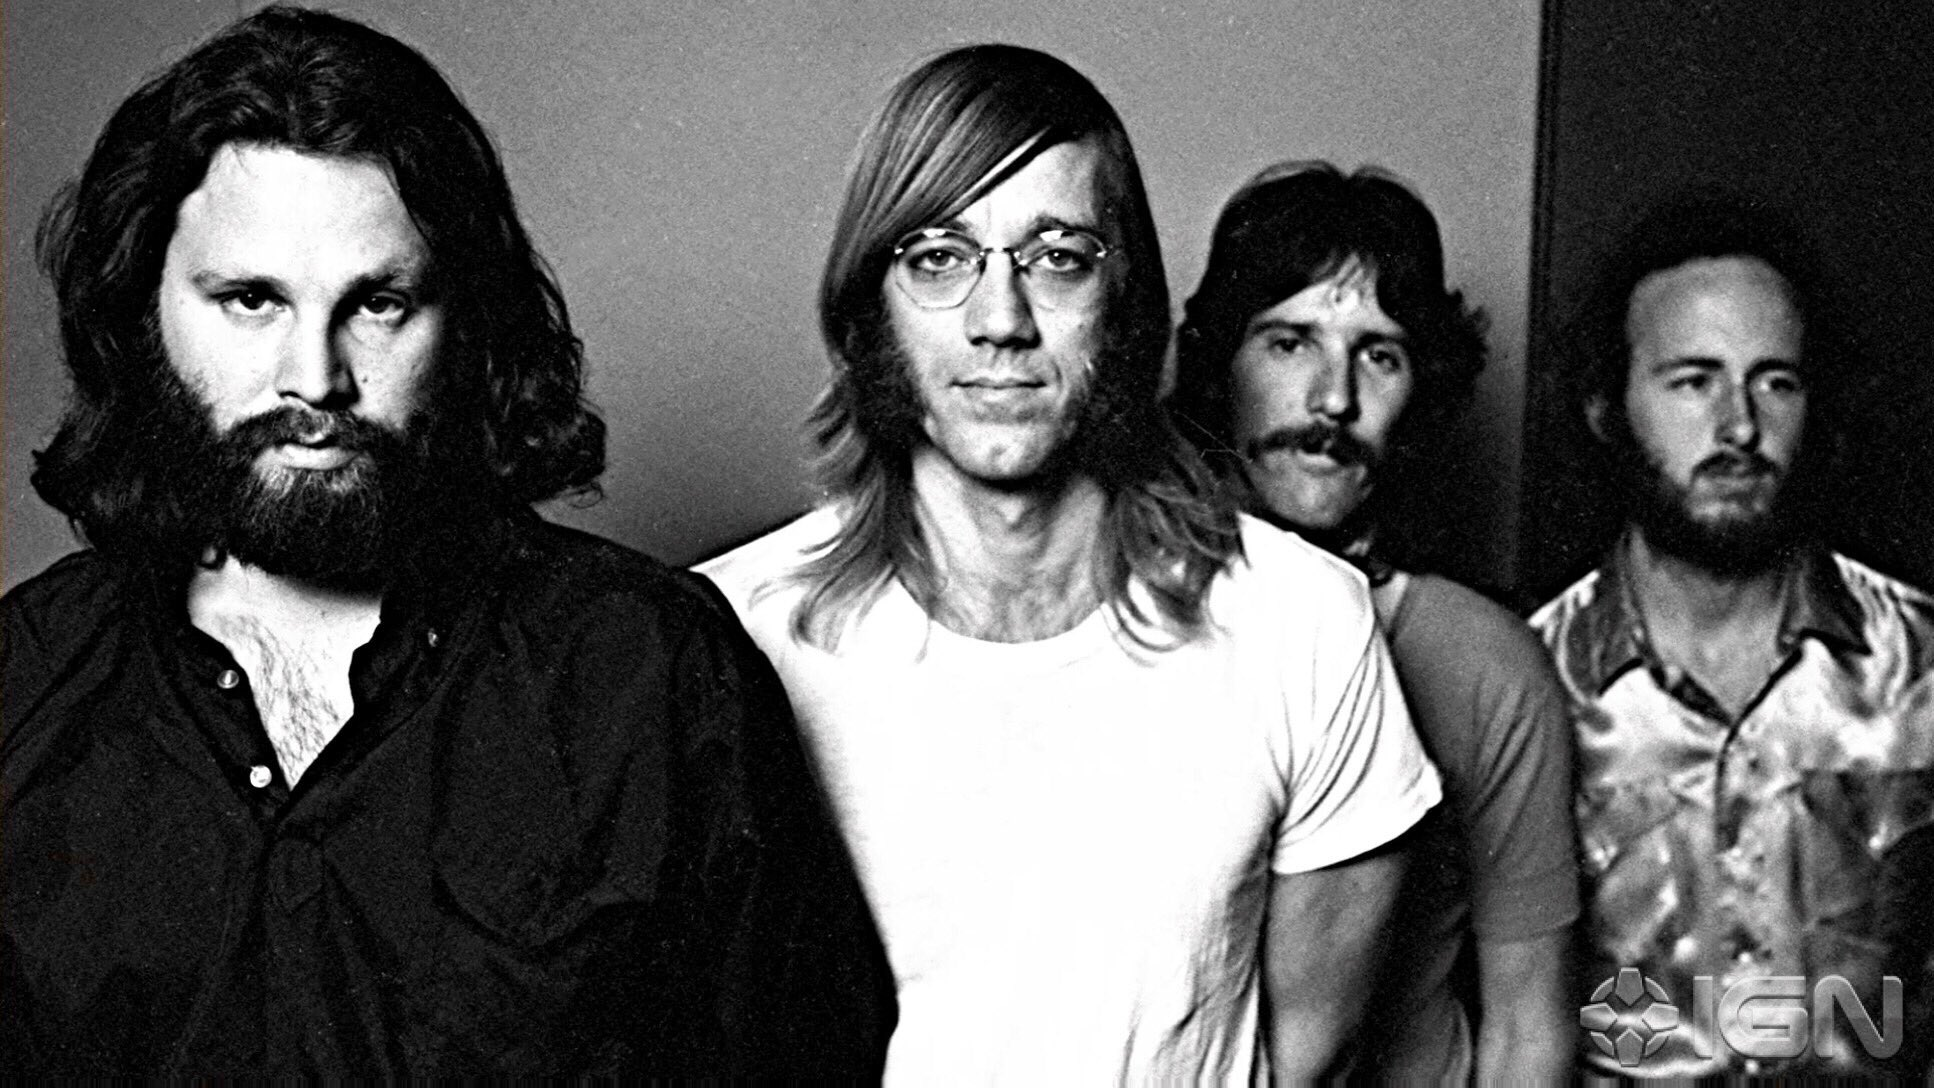 LOS ANGELES, CA - 1970: The Doors—left to right: frontman Jim Morrison (1943-71), organist Ray Manzarek (1939-2013), drummer John Densmore (1944- ), and guitarist Robby Krieger (1946- )—during the L.A. WOMAN recording sessions. Photo: Wendell Hamick https://t.co/xUBRjShX2o